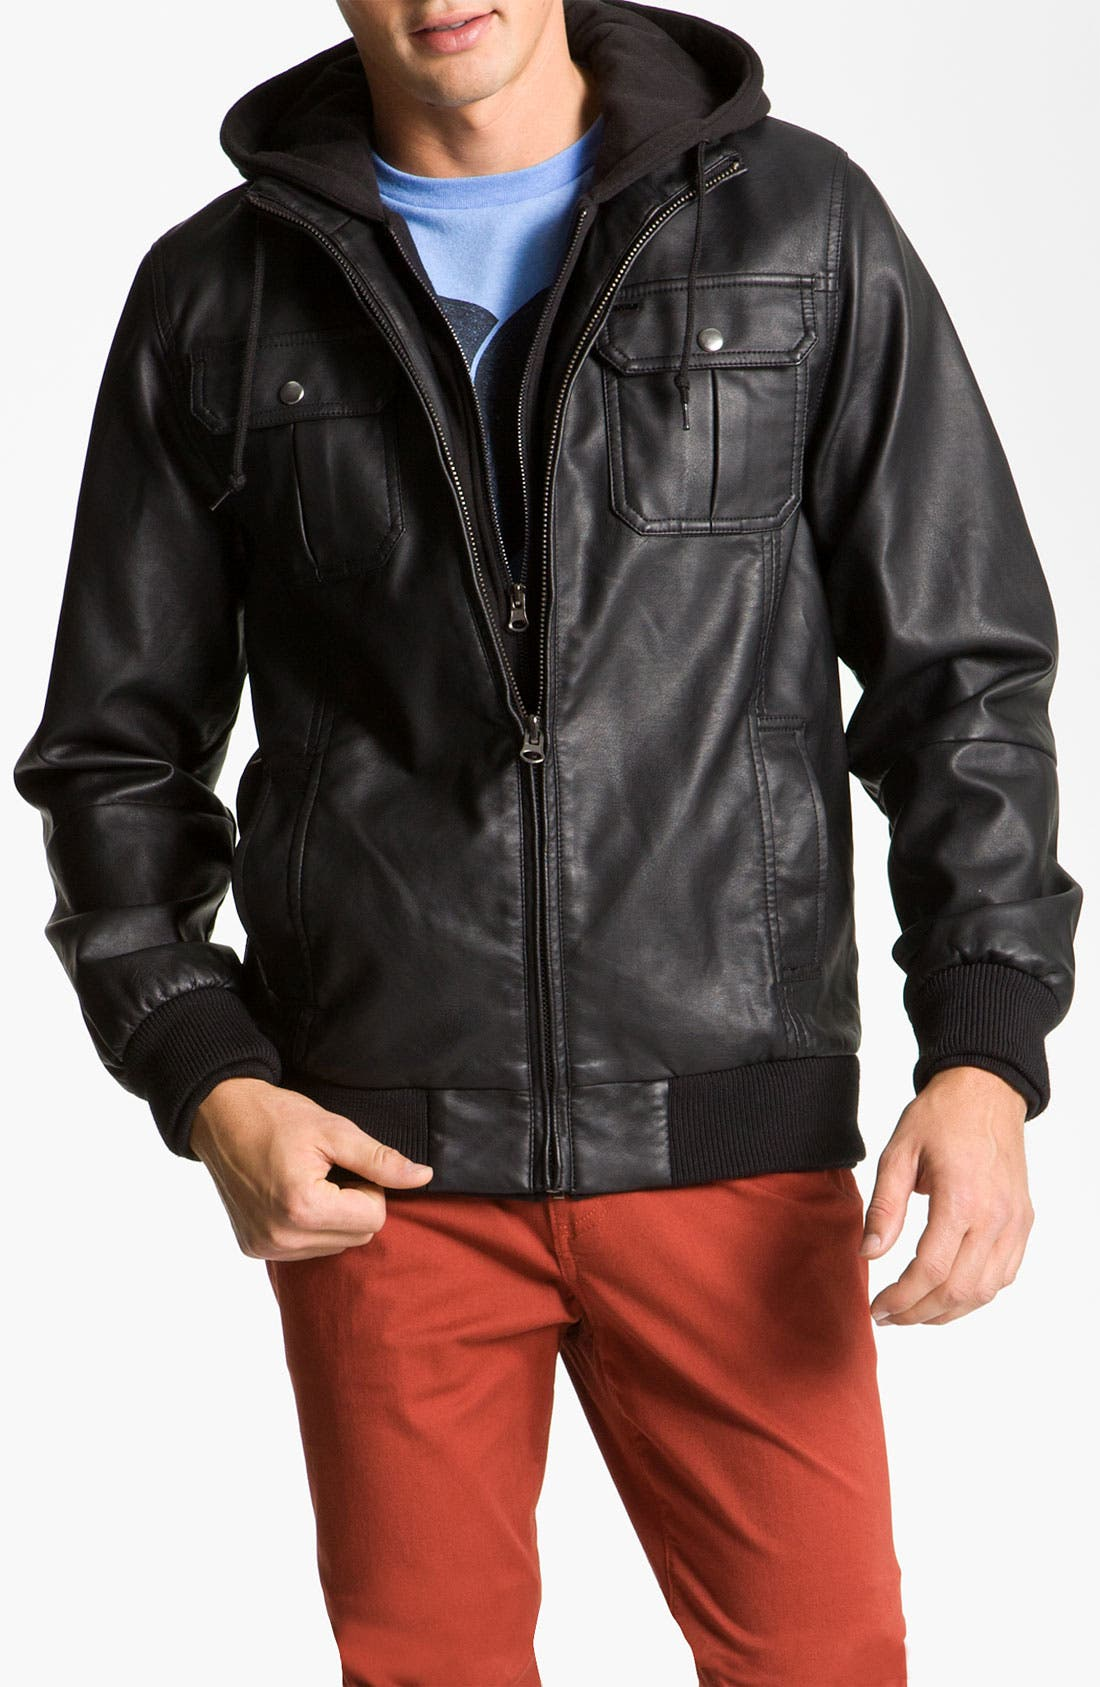 Alternate Image 1 Selected - Obey 'Rapture' Trim Fit Layered Faux Leather Jacket